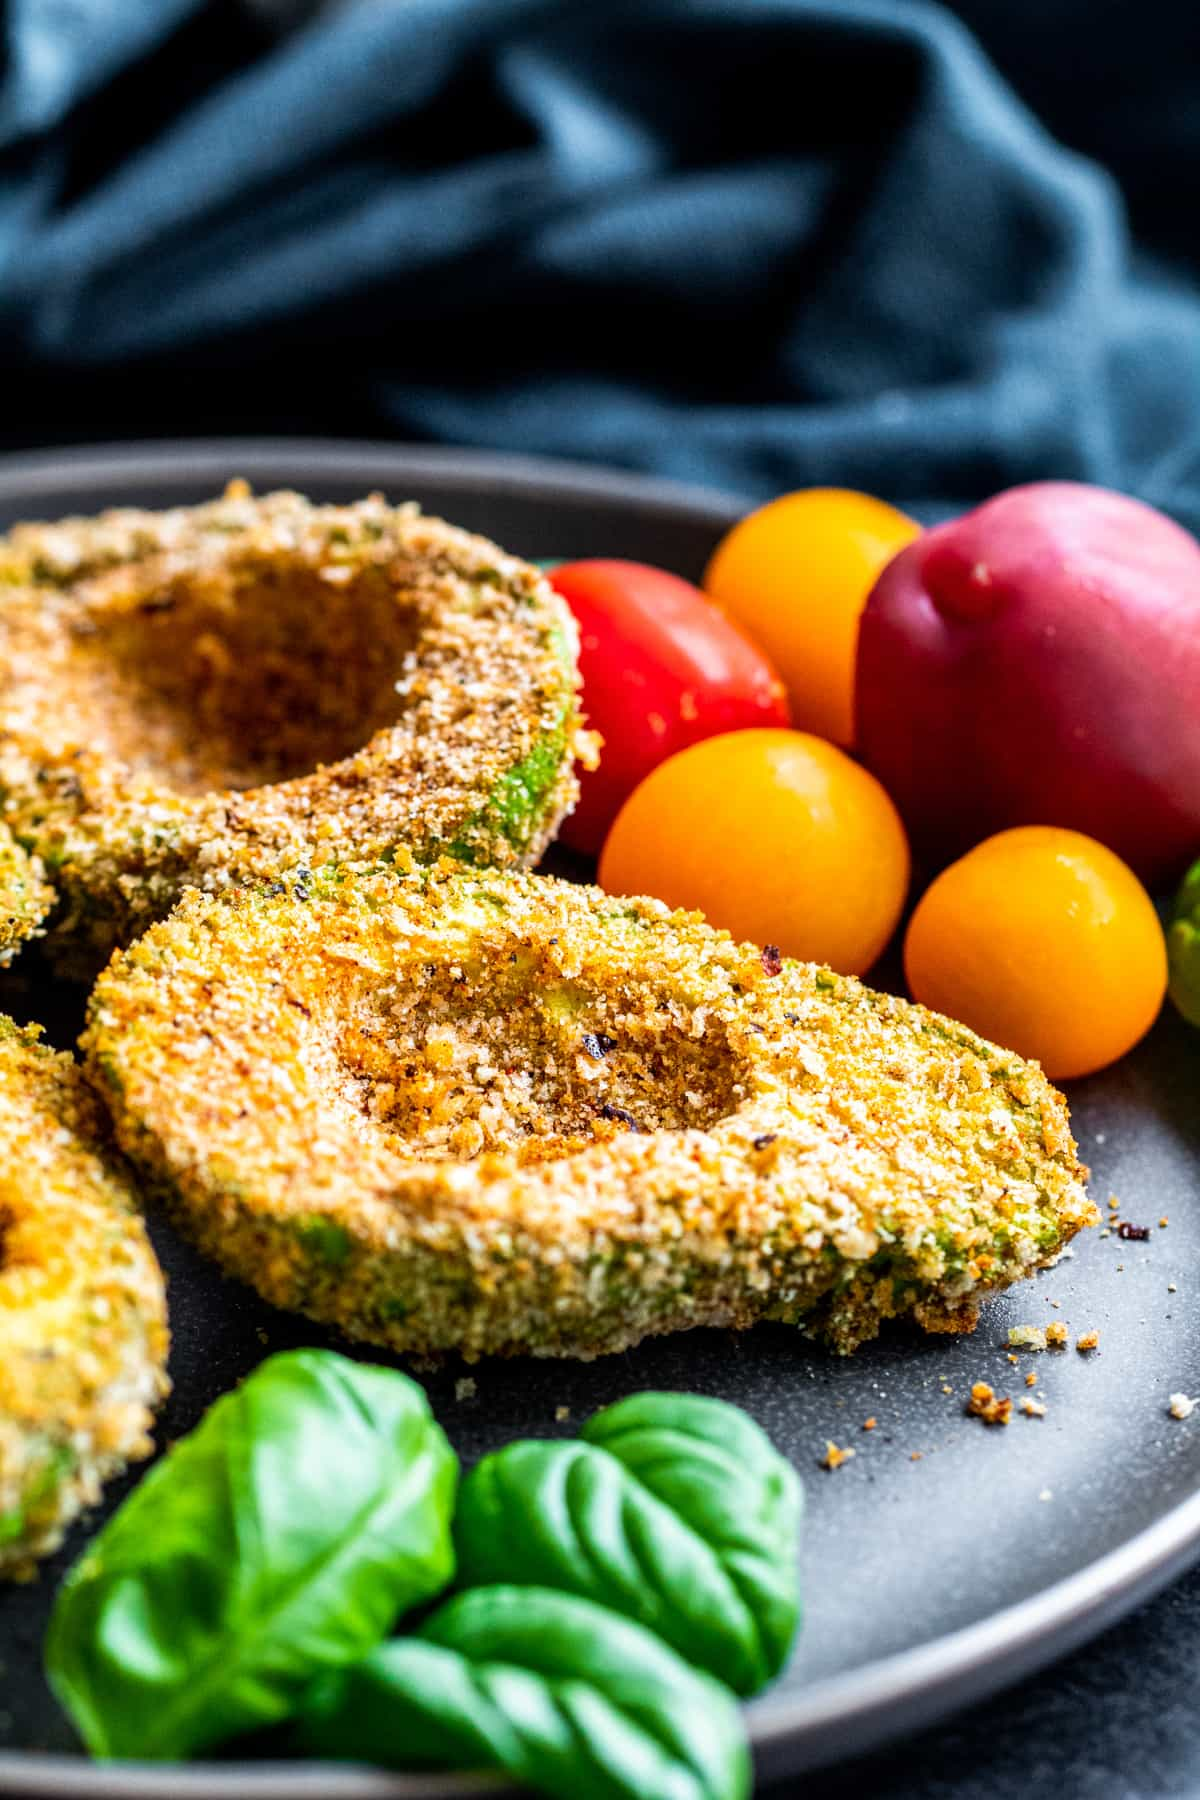 Angle shot of fried avocados on a gray plate with tomatoes and basil.